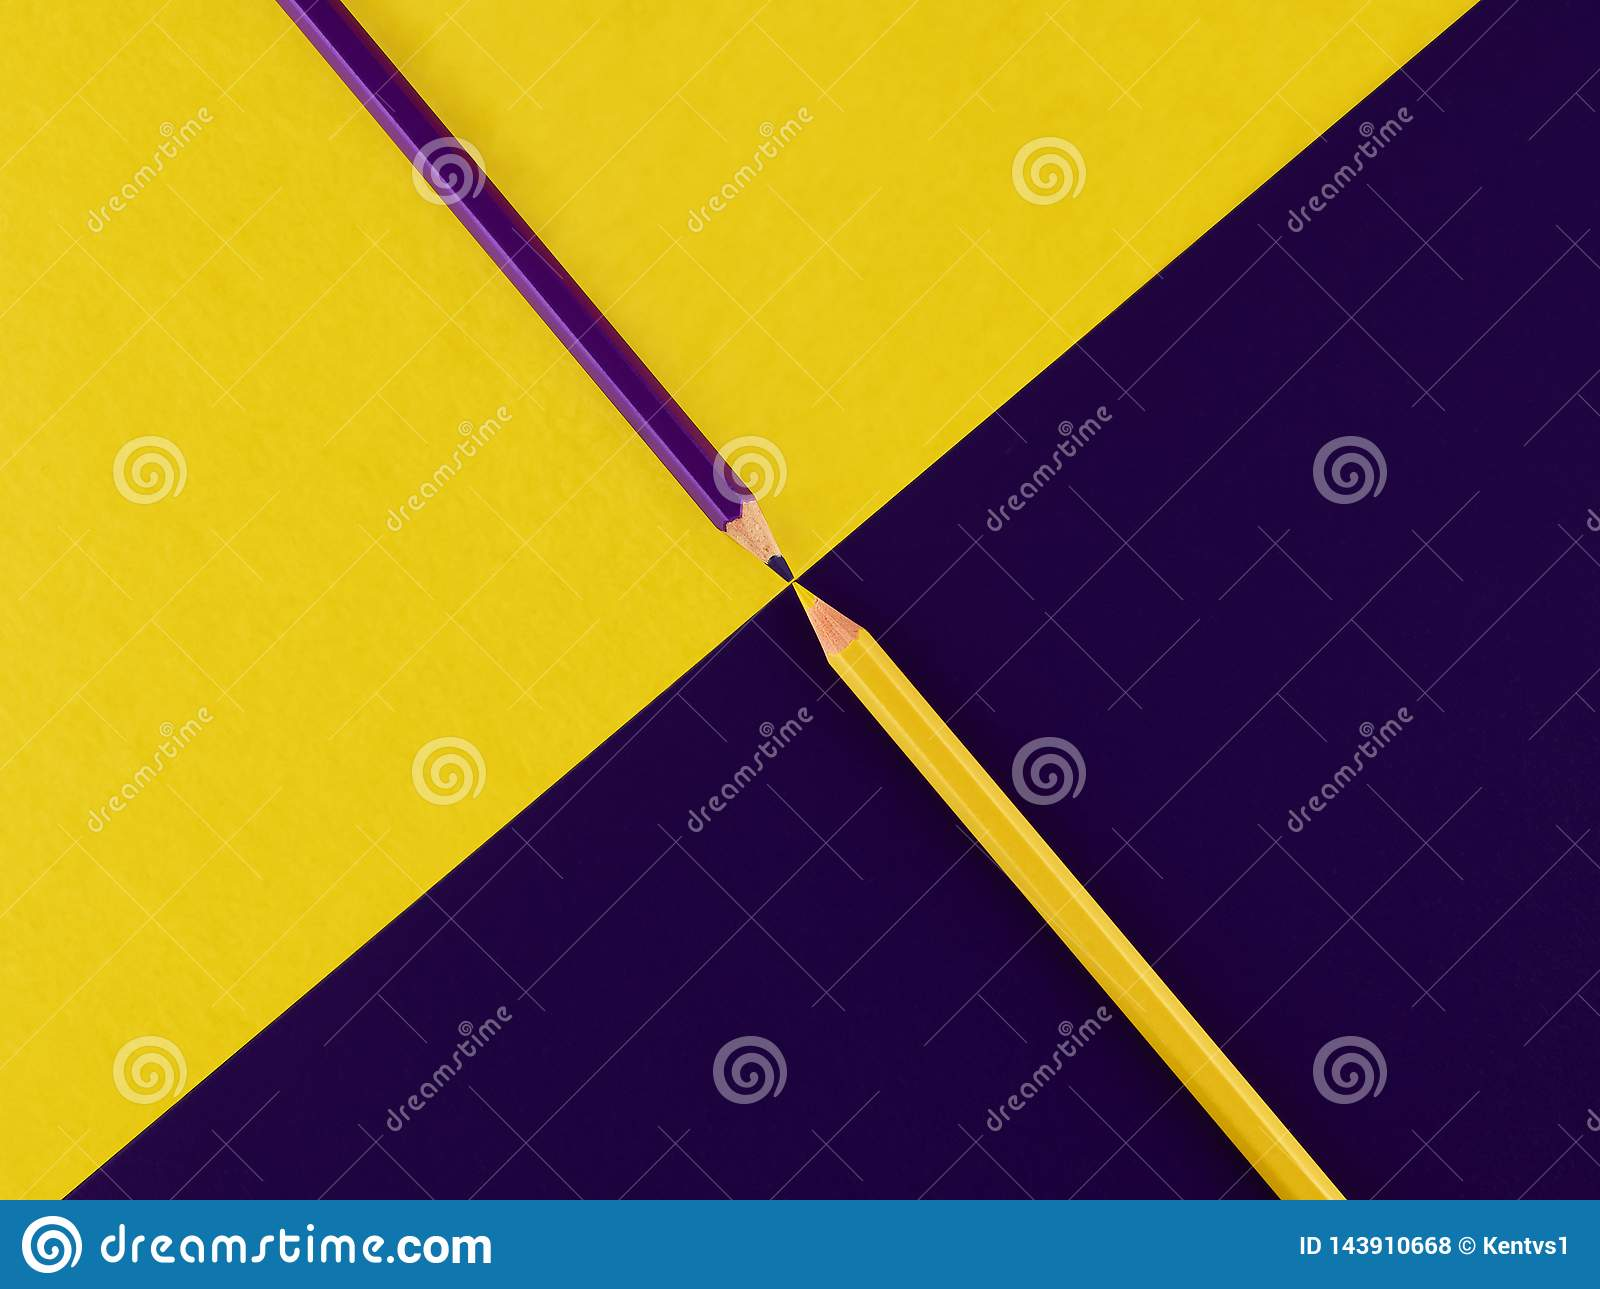 Purple and yellow pencils on a contrasting background